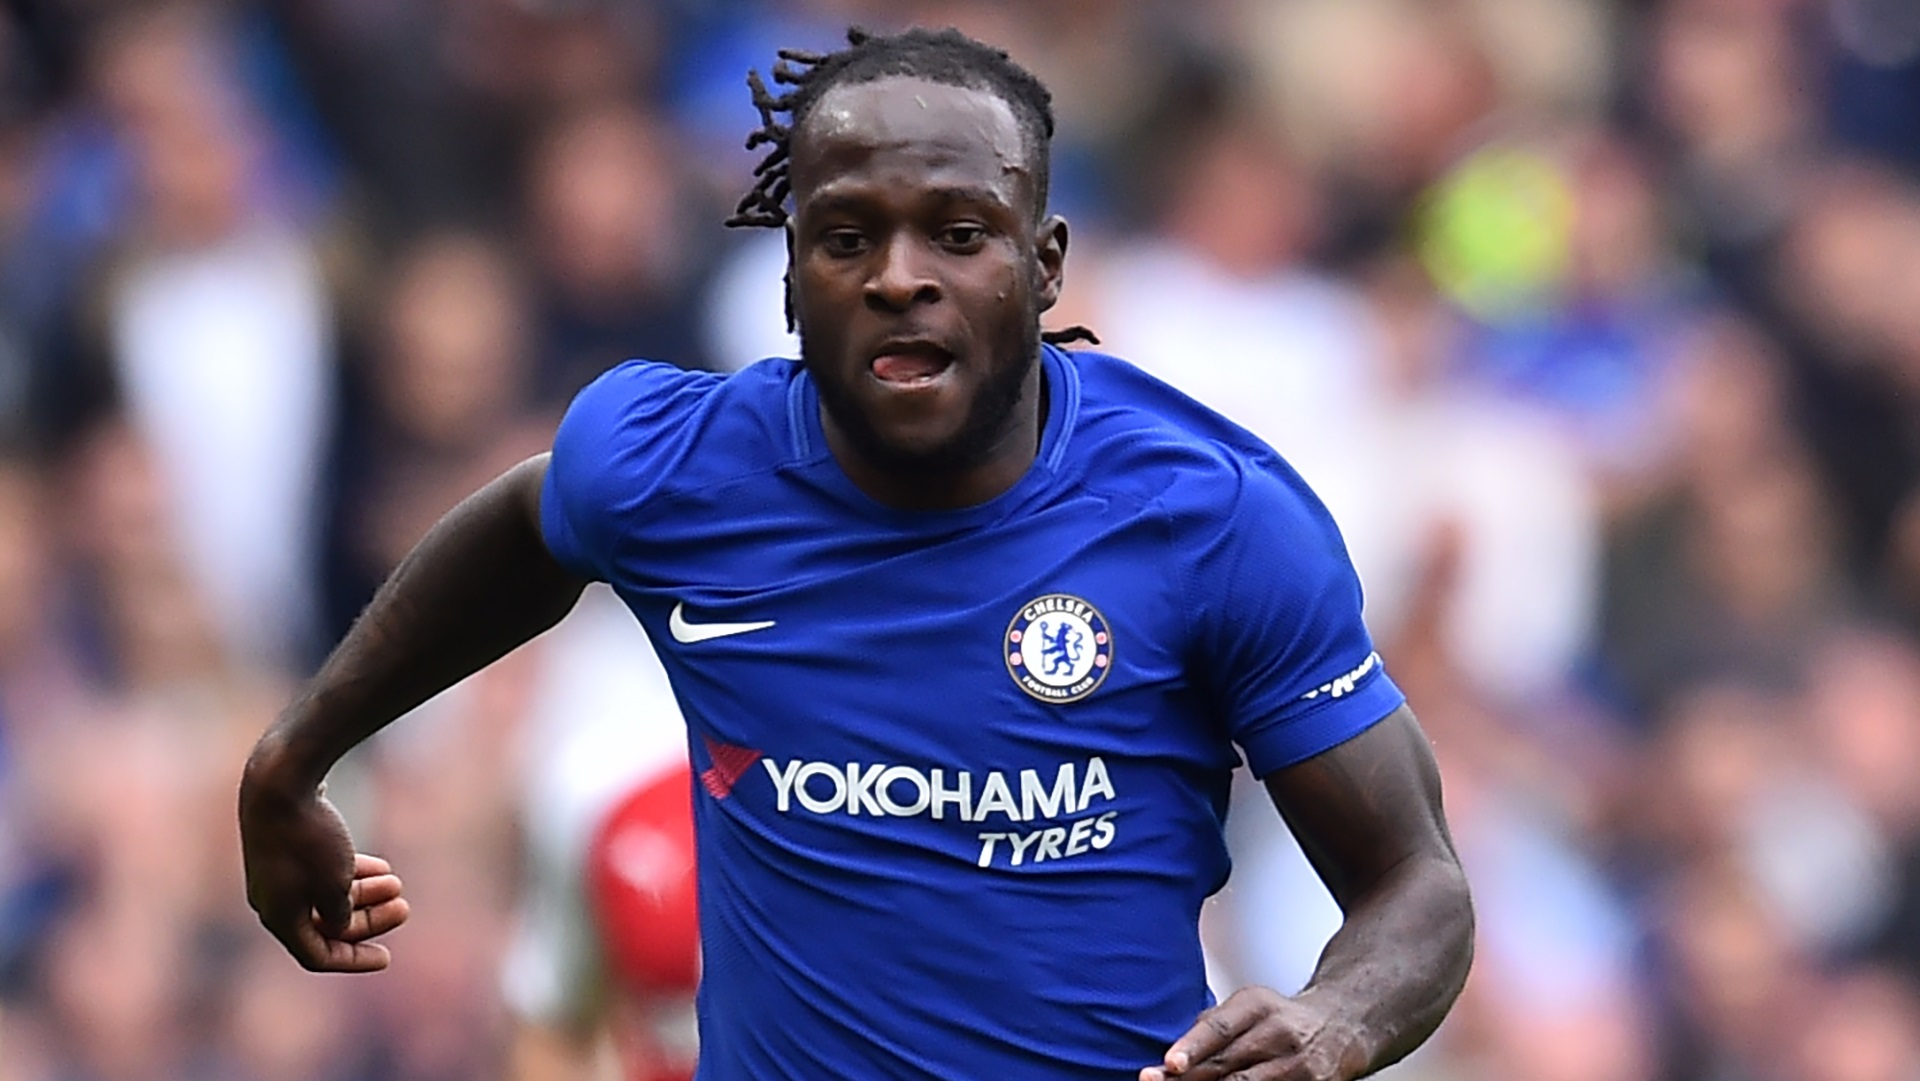 Victor Moses, Mohammed Salah, Sadio Mane top 30-man Caf African Player of the Year list